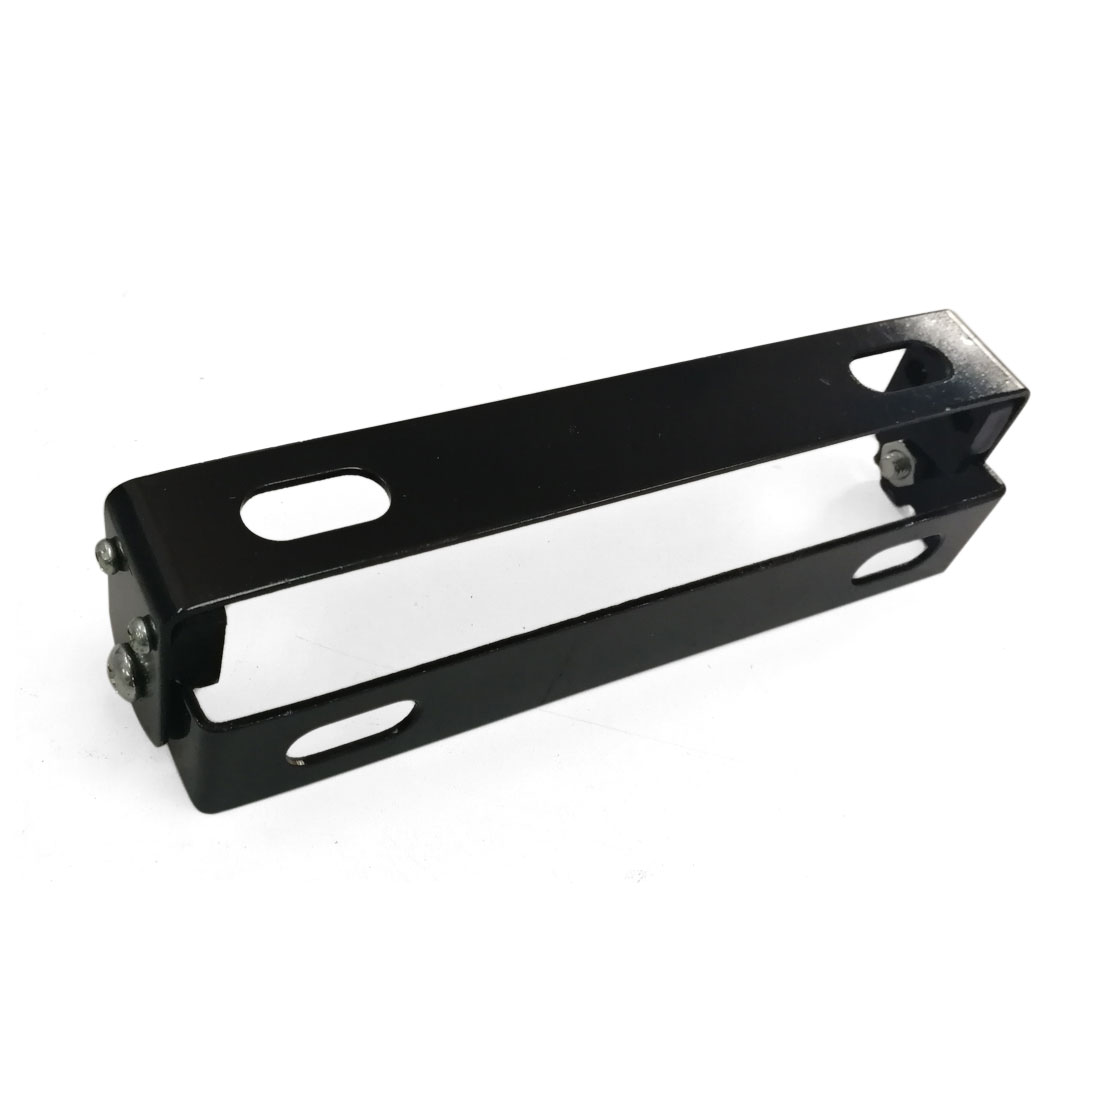 Motorcycle Automobile Adjustable Angle Black Metal License Plate Holder Bracket